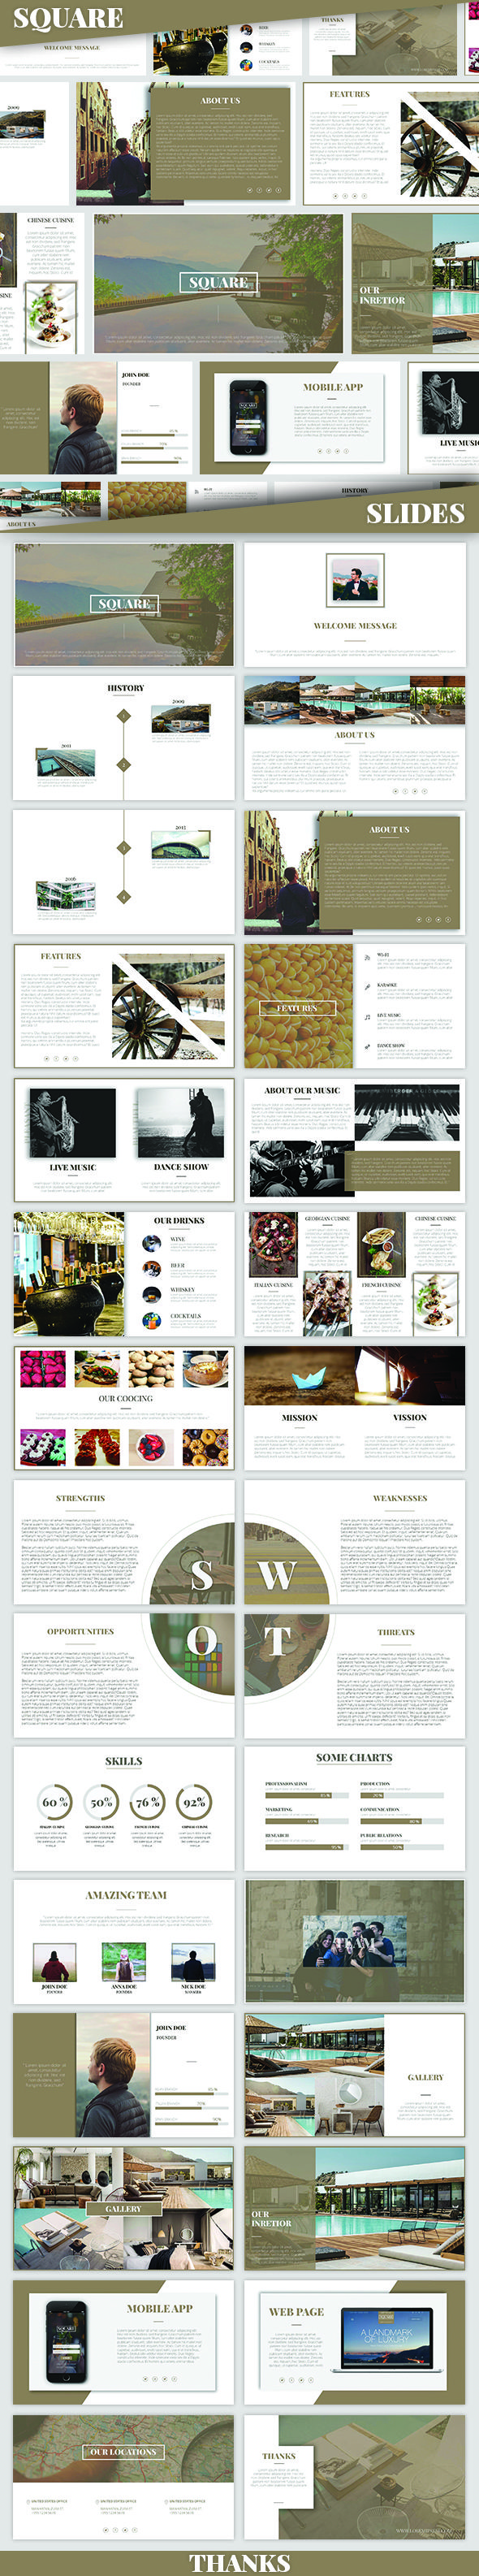 Best Presentation Design Images On Pinterest Page Layout - Fresh tsunami powerpoint presentation design